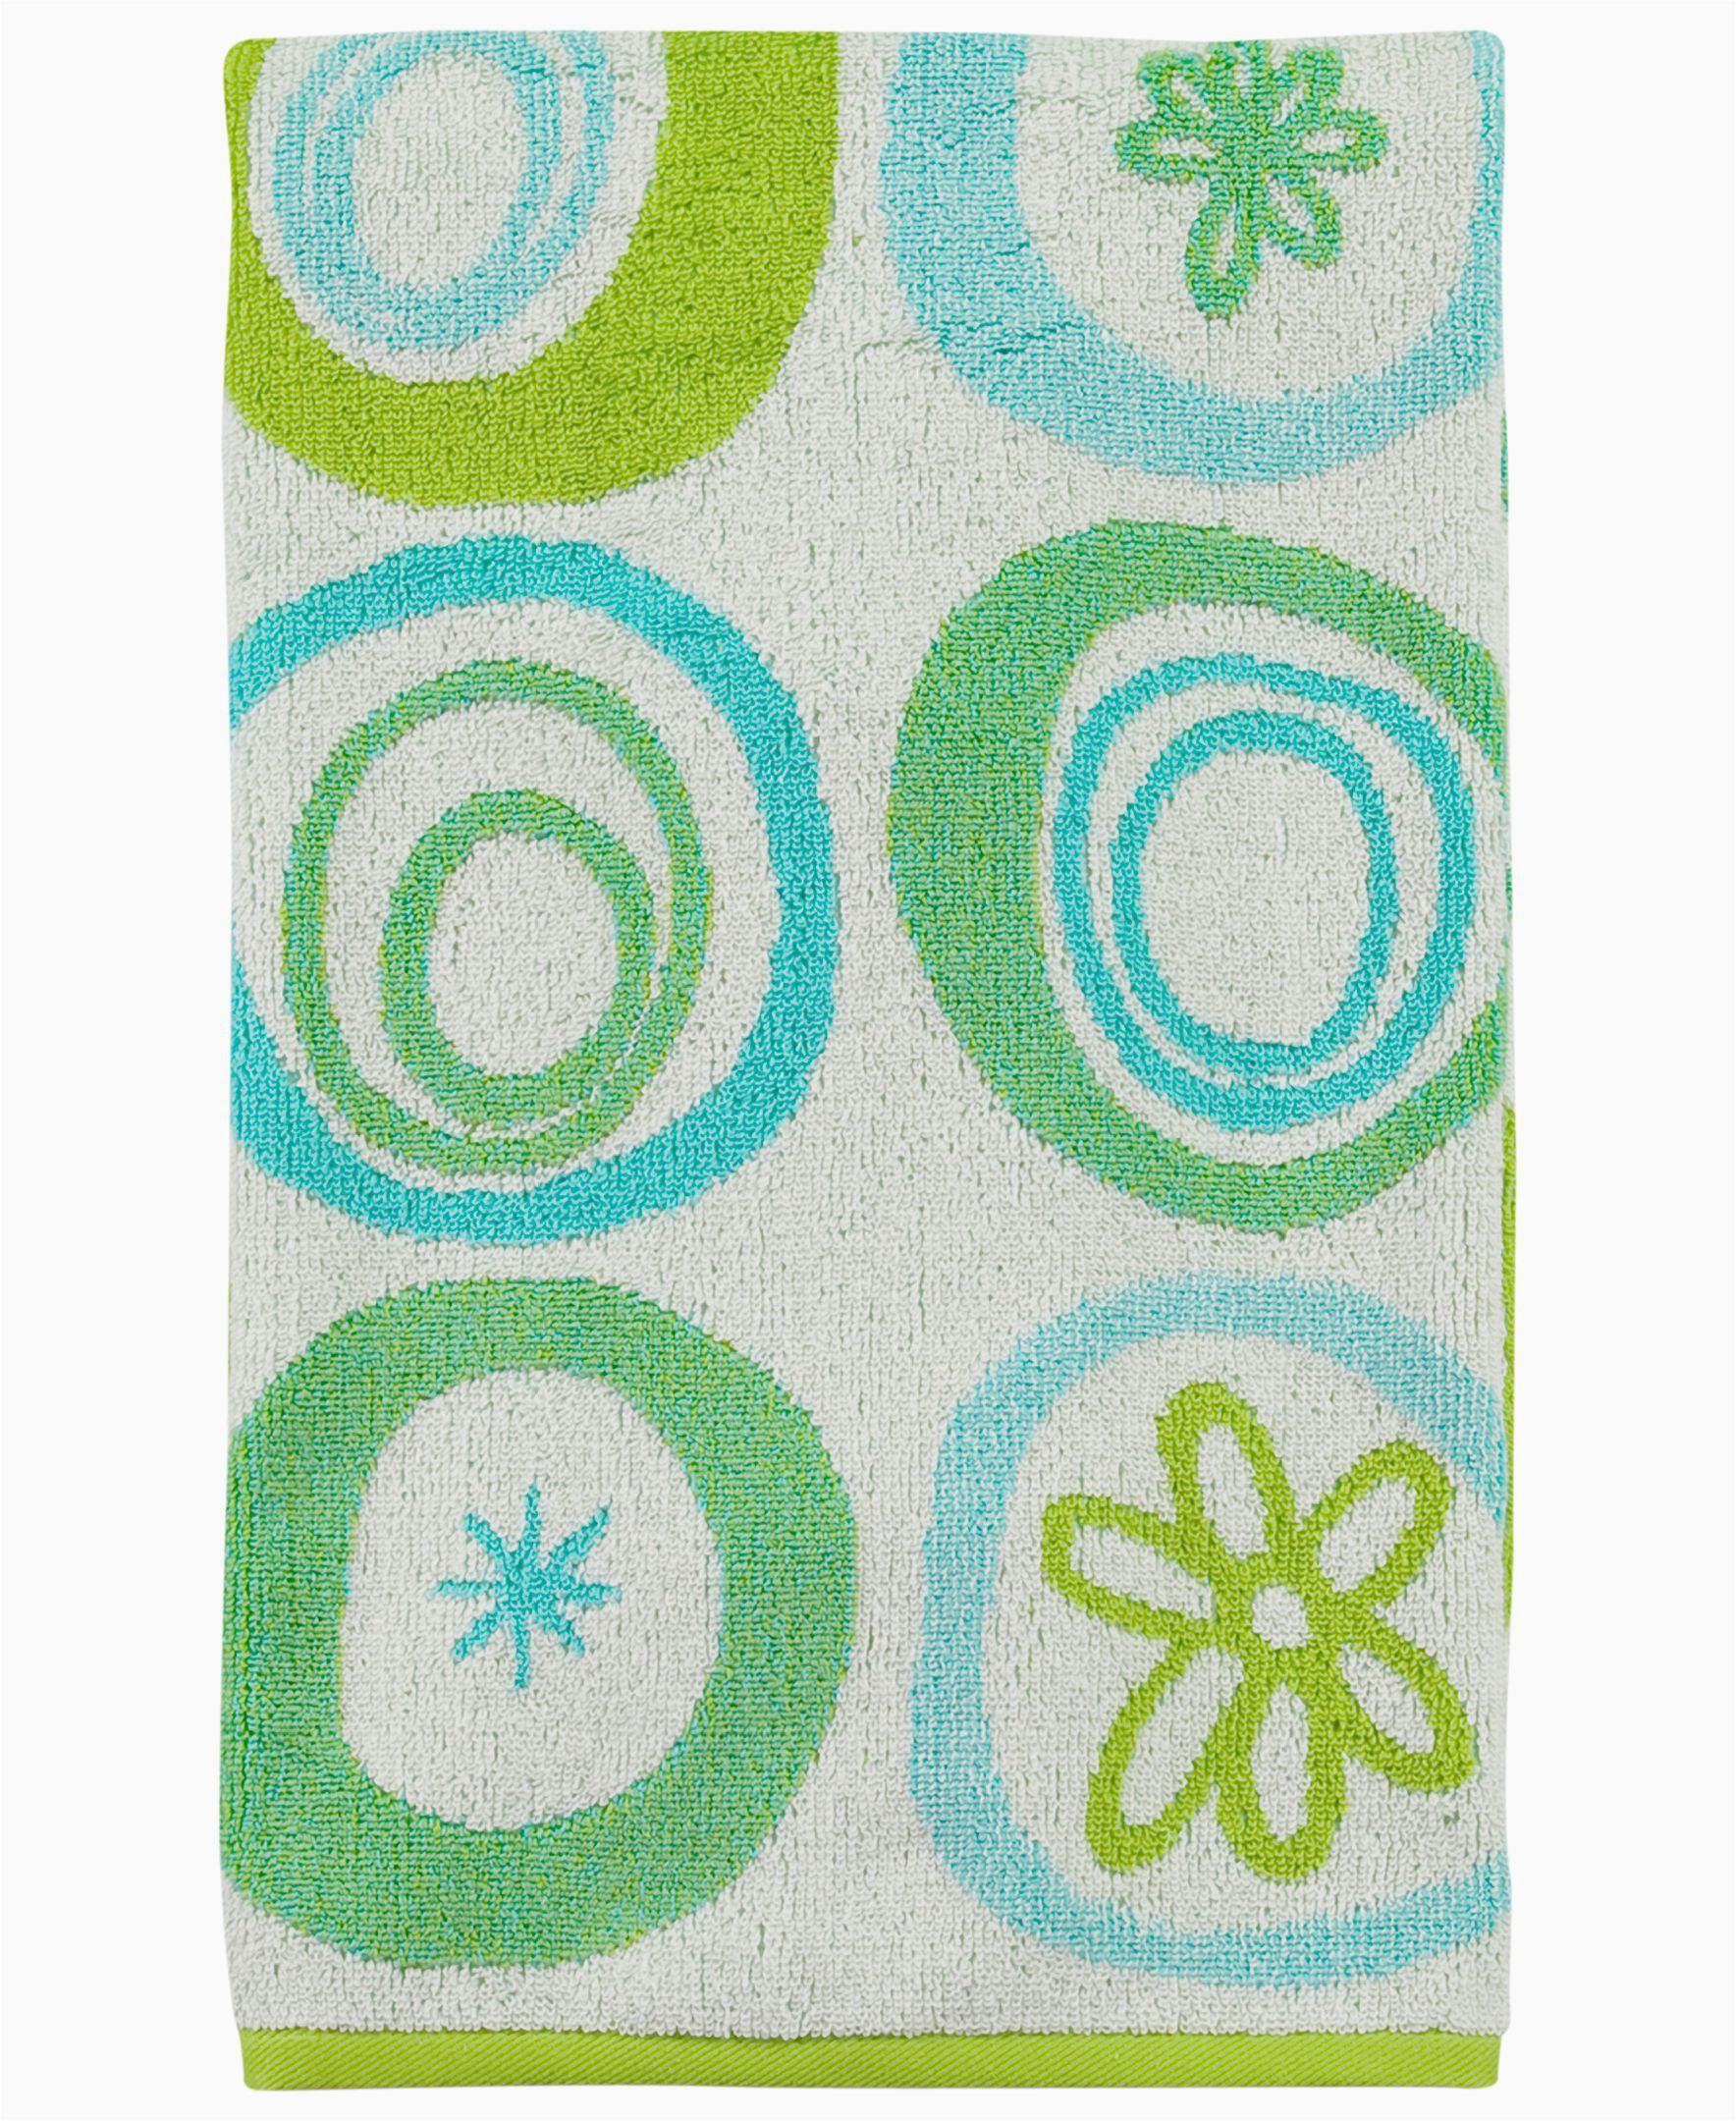 Kohl S Bath towels and Rugs towels All that Jazz 27 X 52 Bath towel